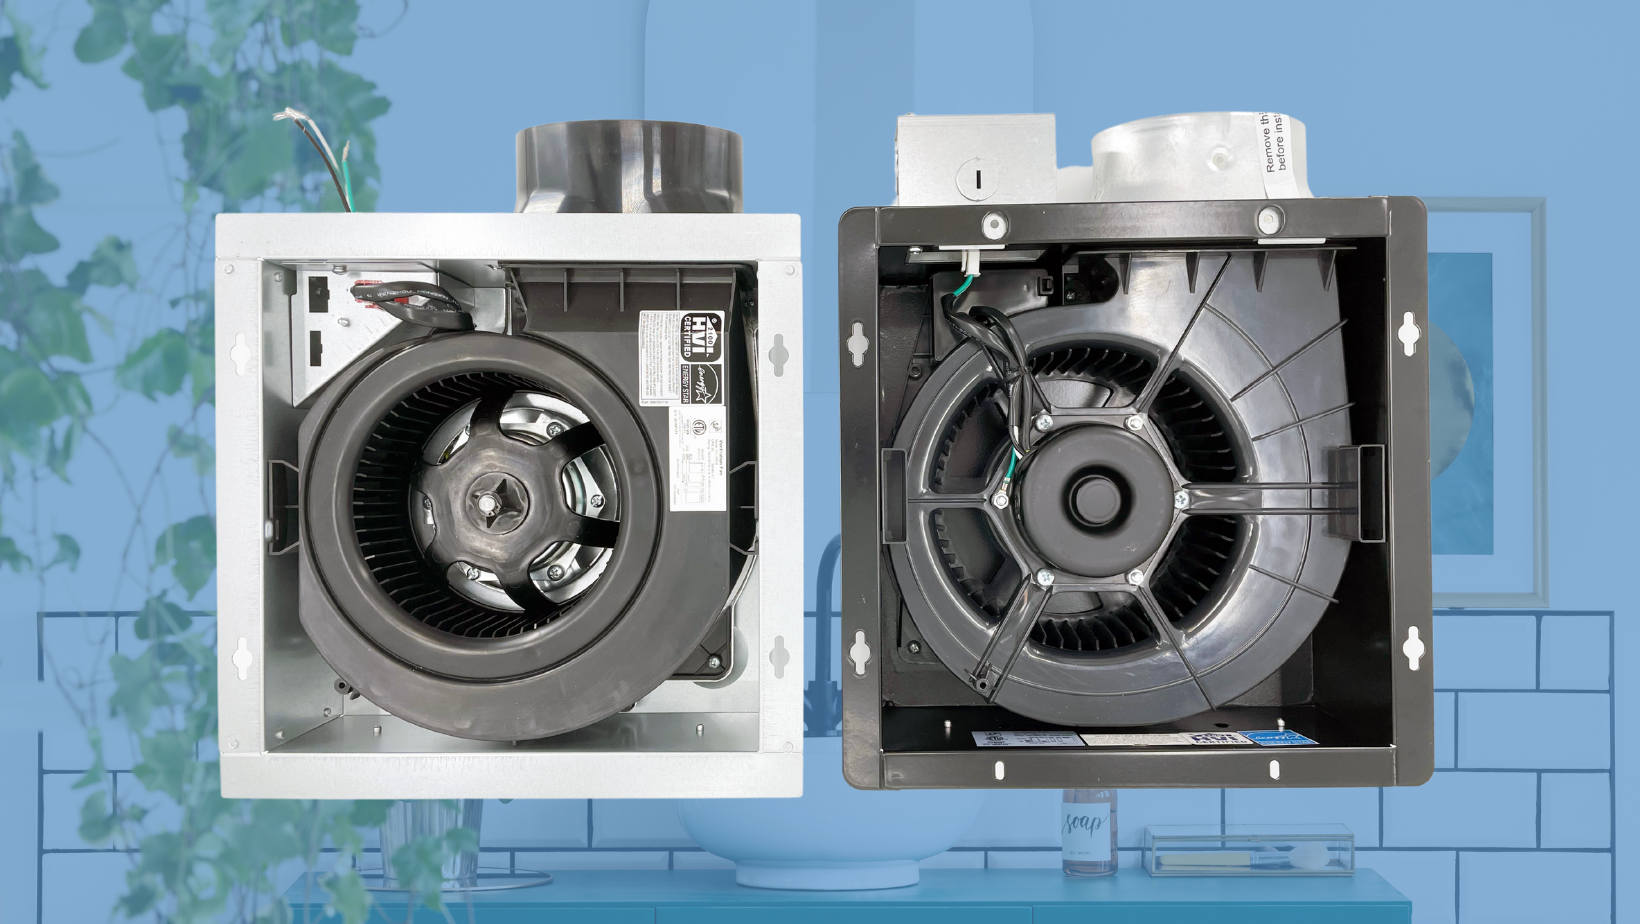 PCLP and PCLPXP: Which Low Profile Exhaust Fans To Use